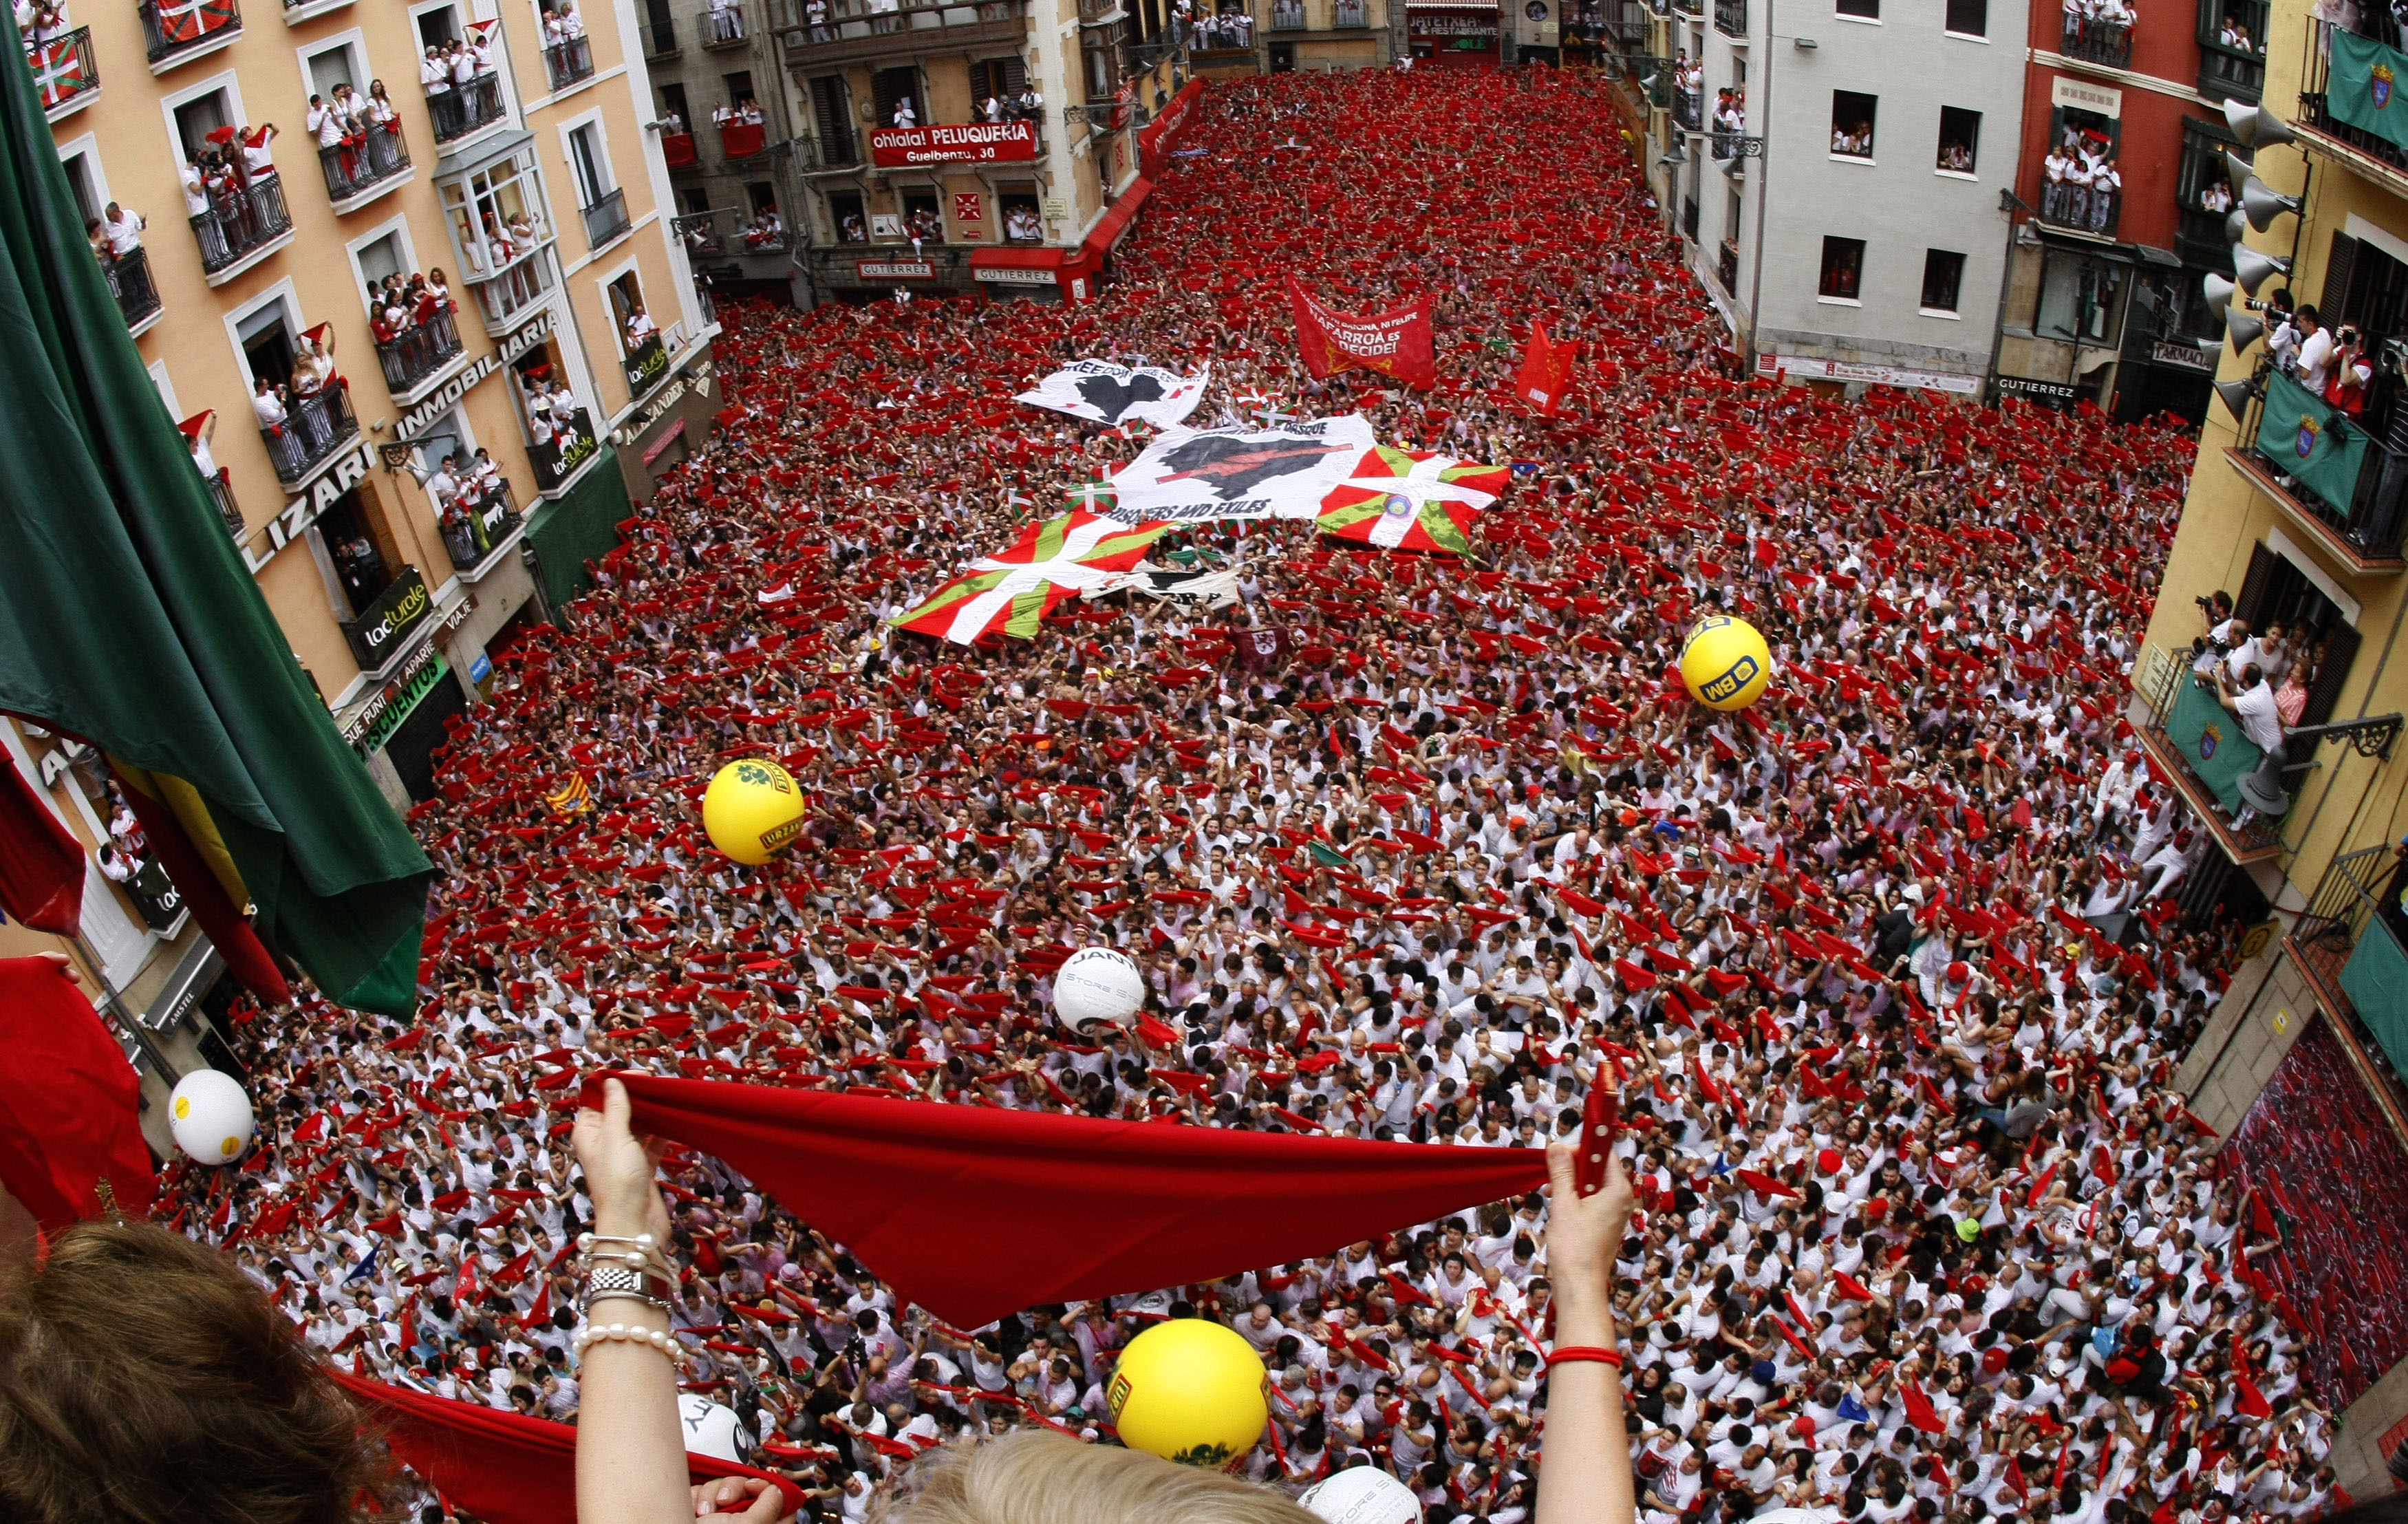 People cheer after hearing the midday Chupinazo rocket announcing the start of the San Fermin festival in Pamplona on July 6, 2014.